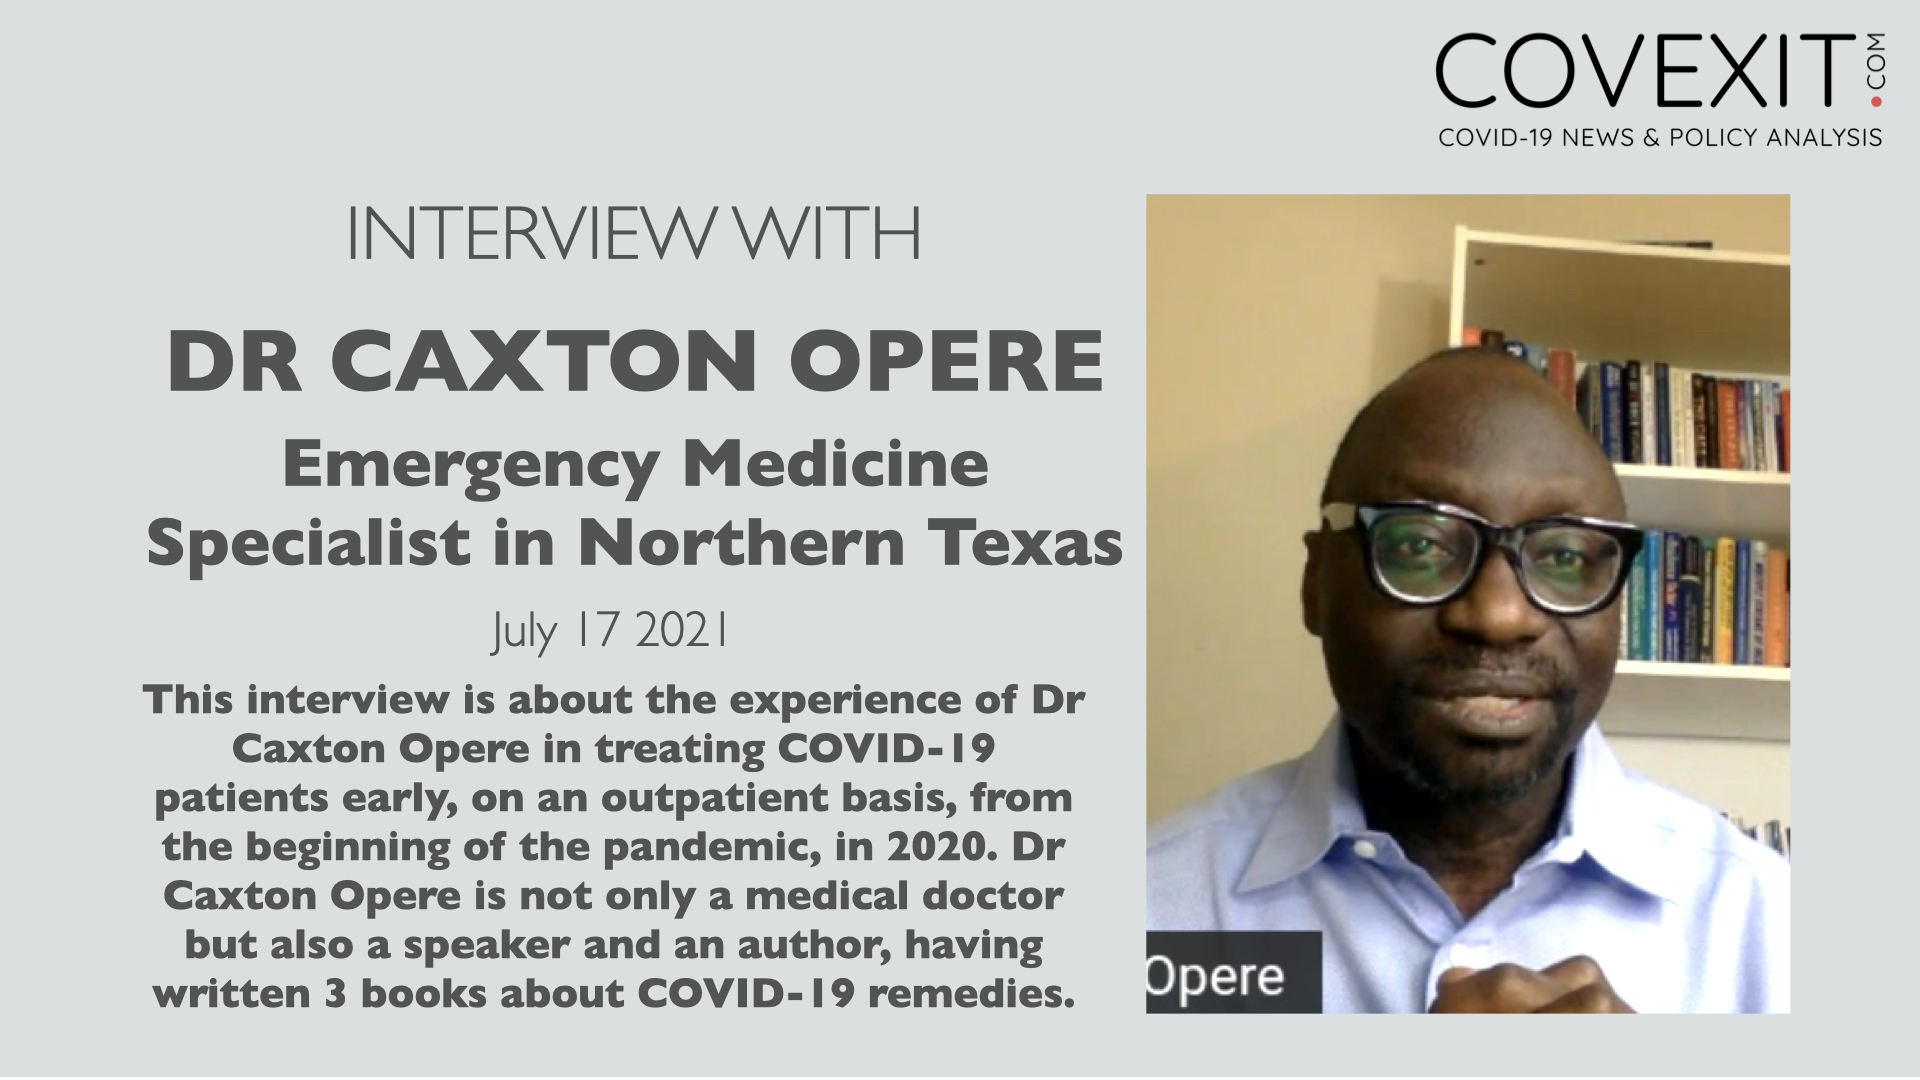 Dr Caxton Opere & COVID-19 Early Treatment in Rural Texas